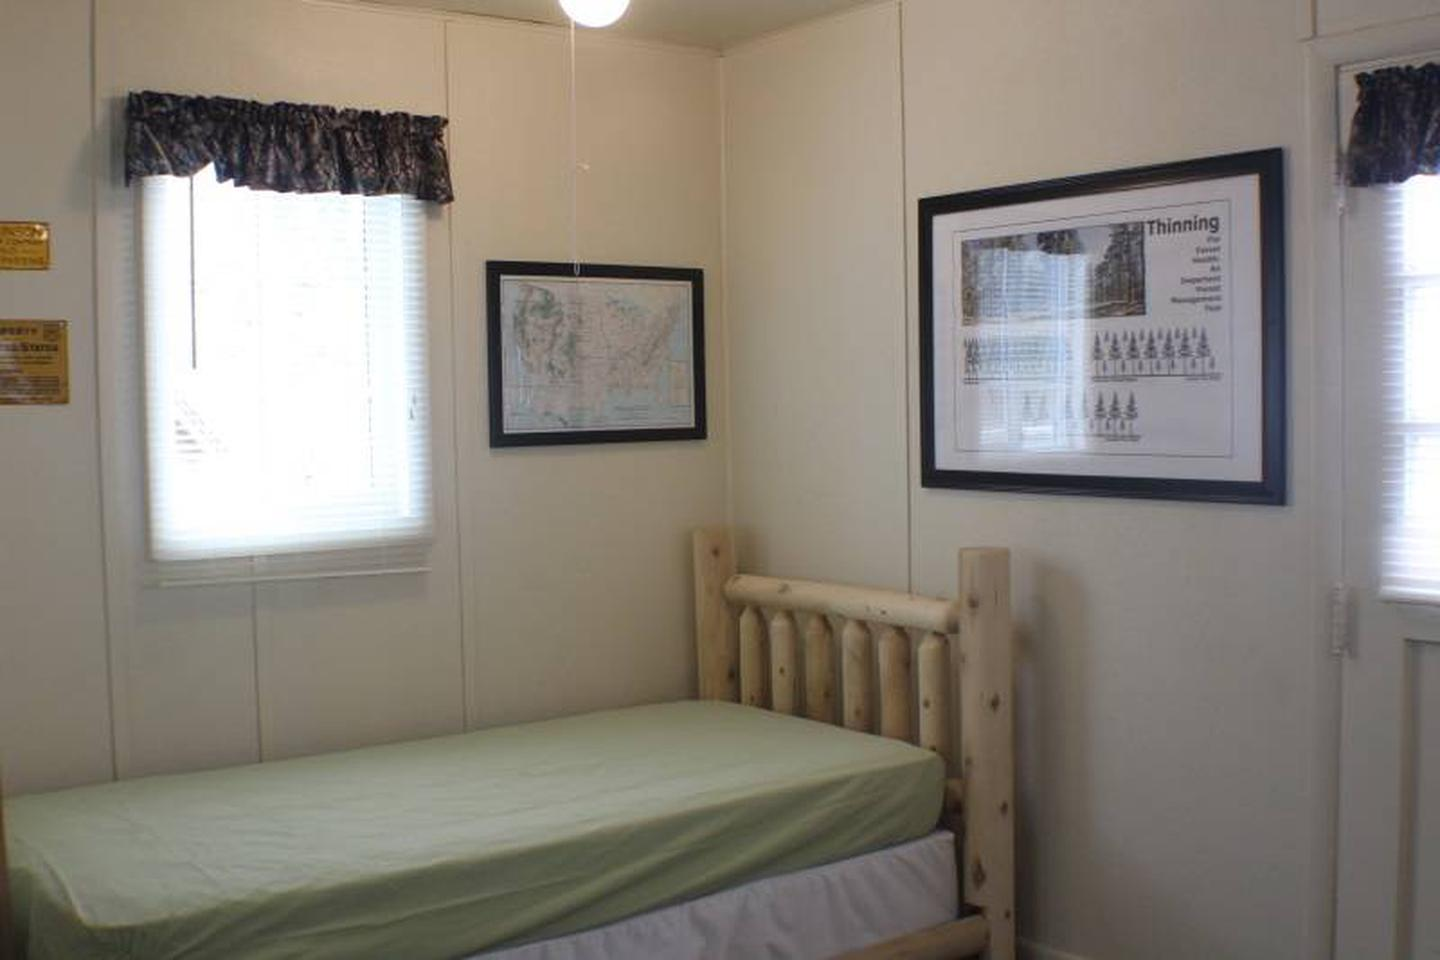 Twin bedCabin 2: View to right of door showing twin bed.